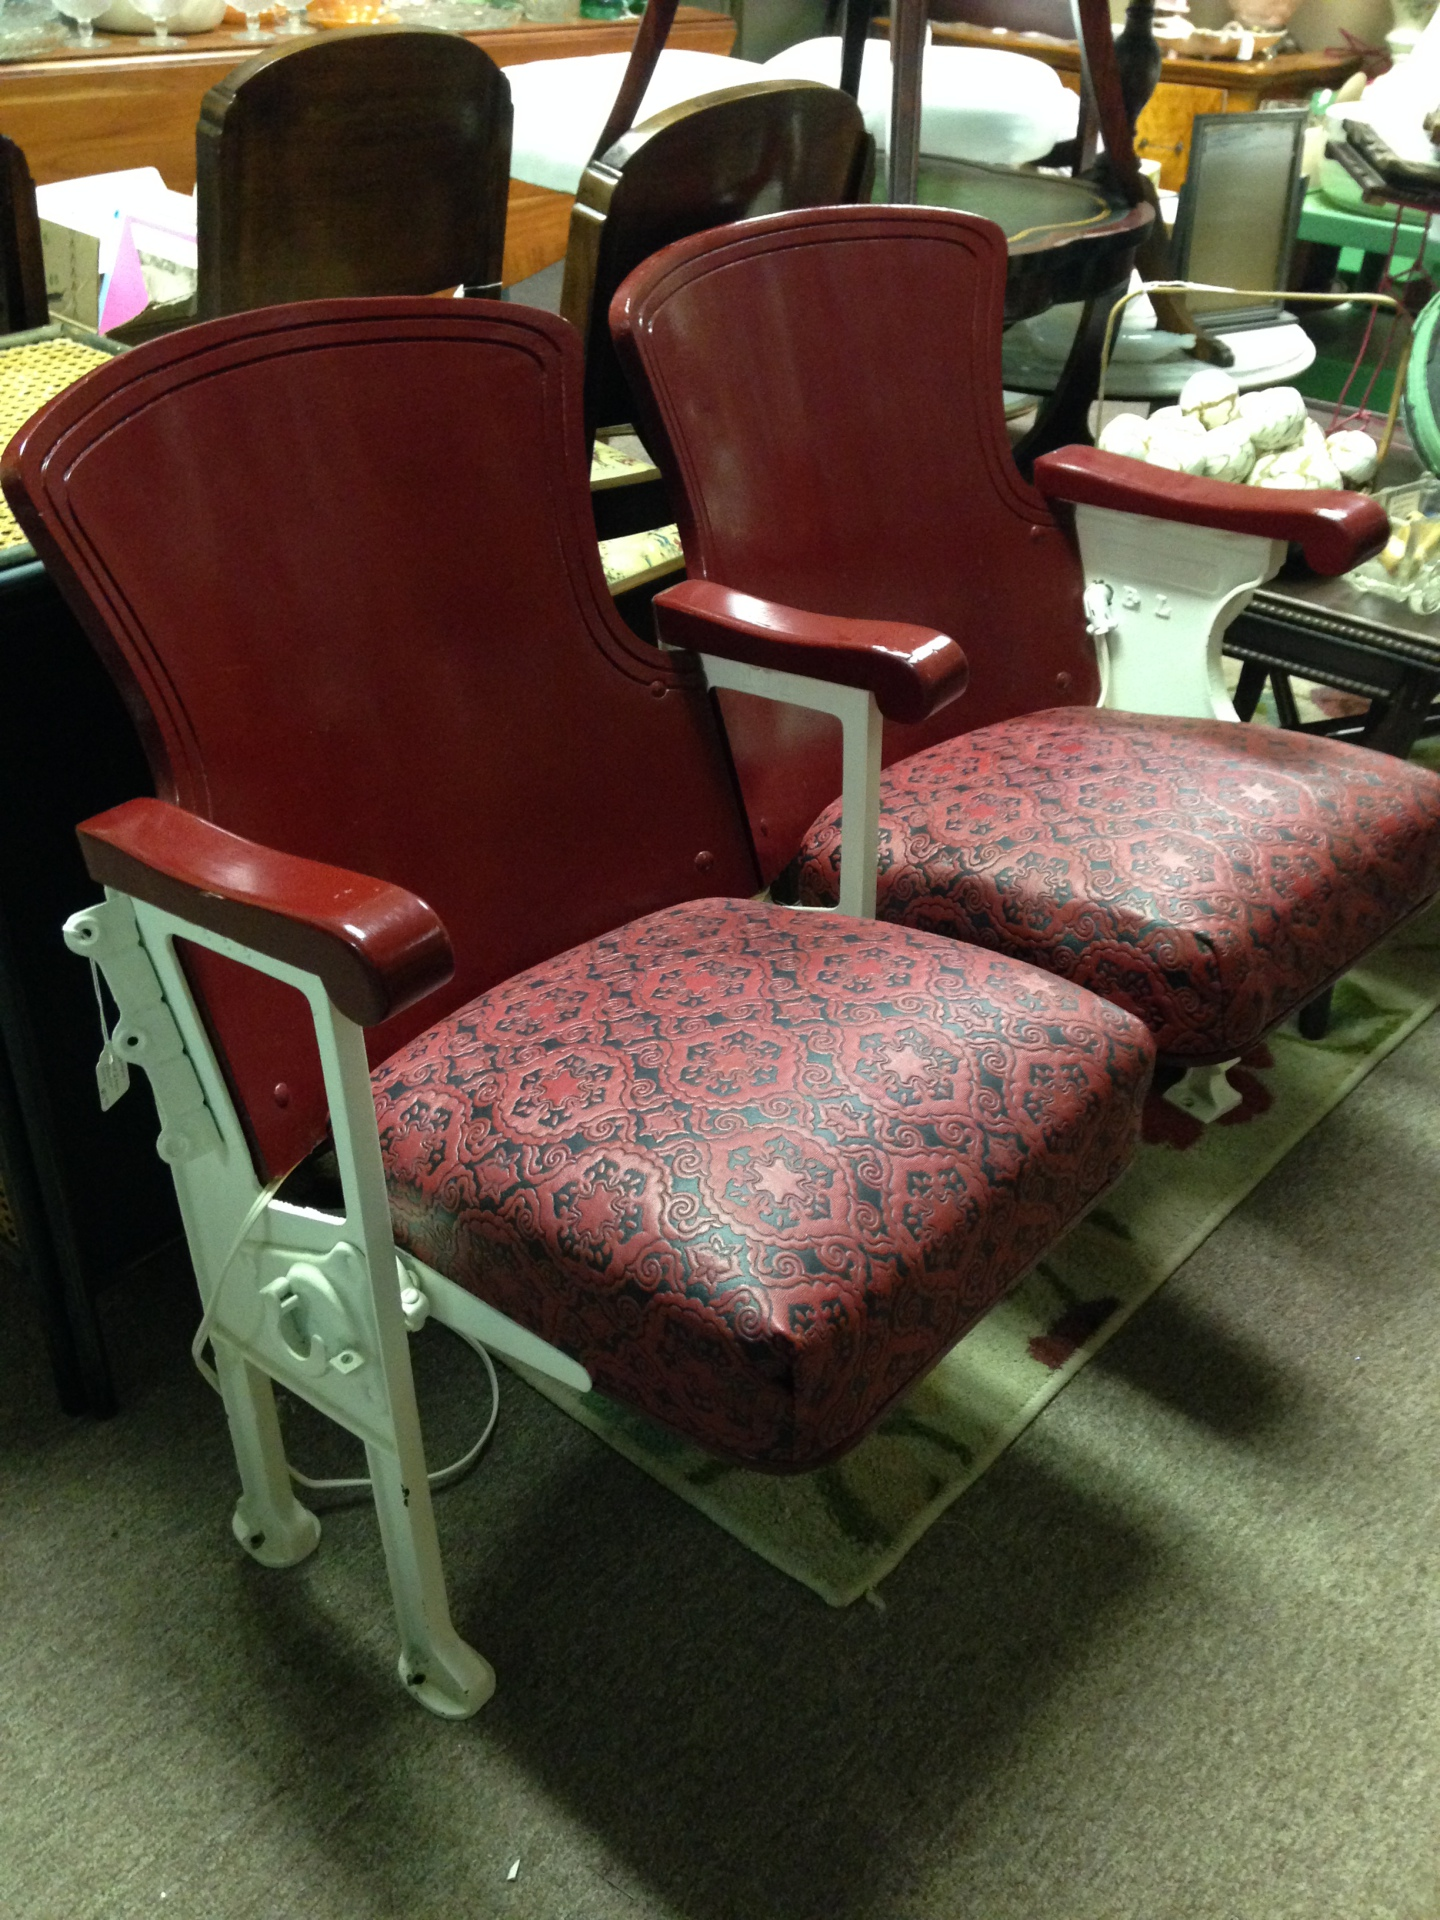 1930s New Braunfels Capital Theater seats